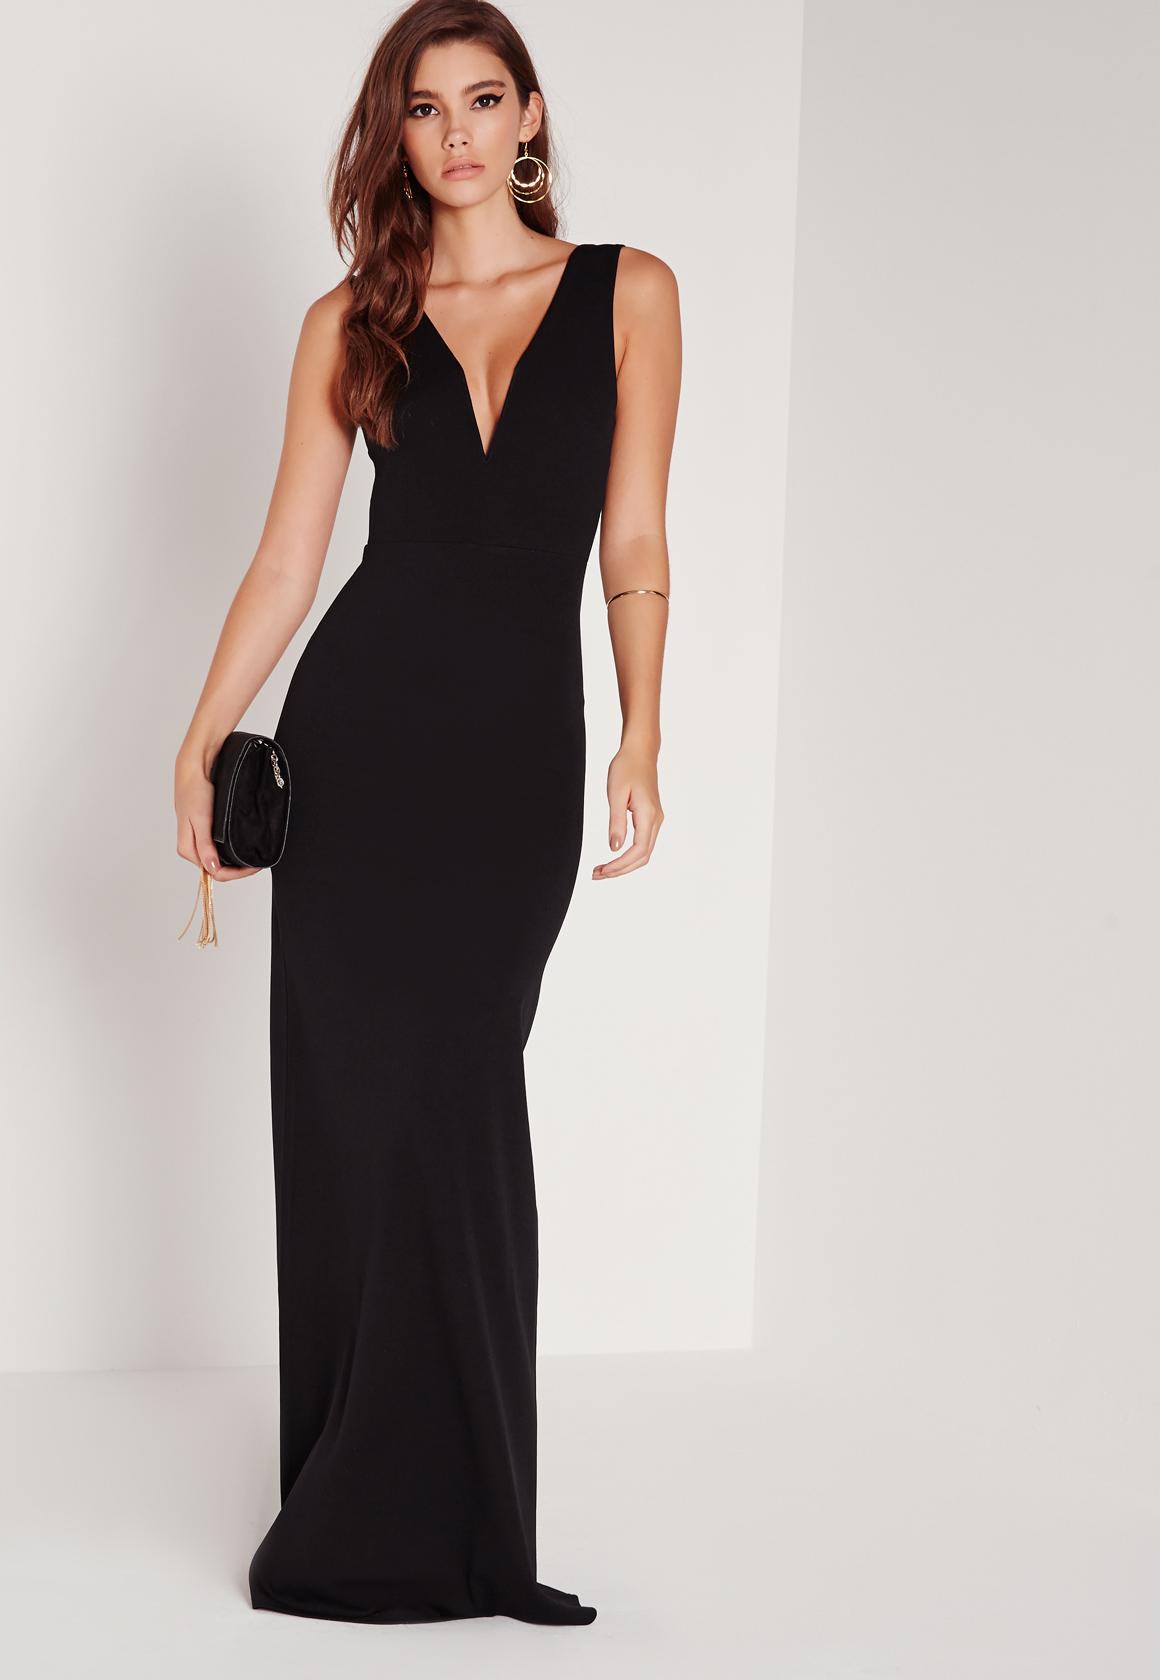 Formal Dresses | Prom Dresses Online - Missguided Australia